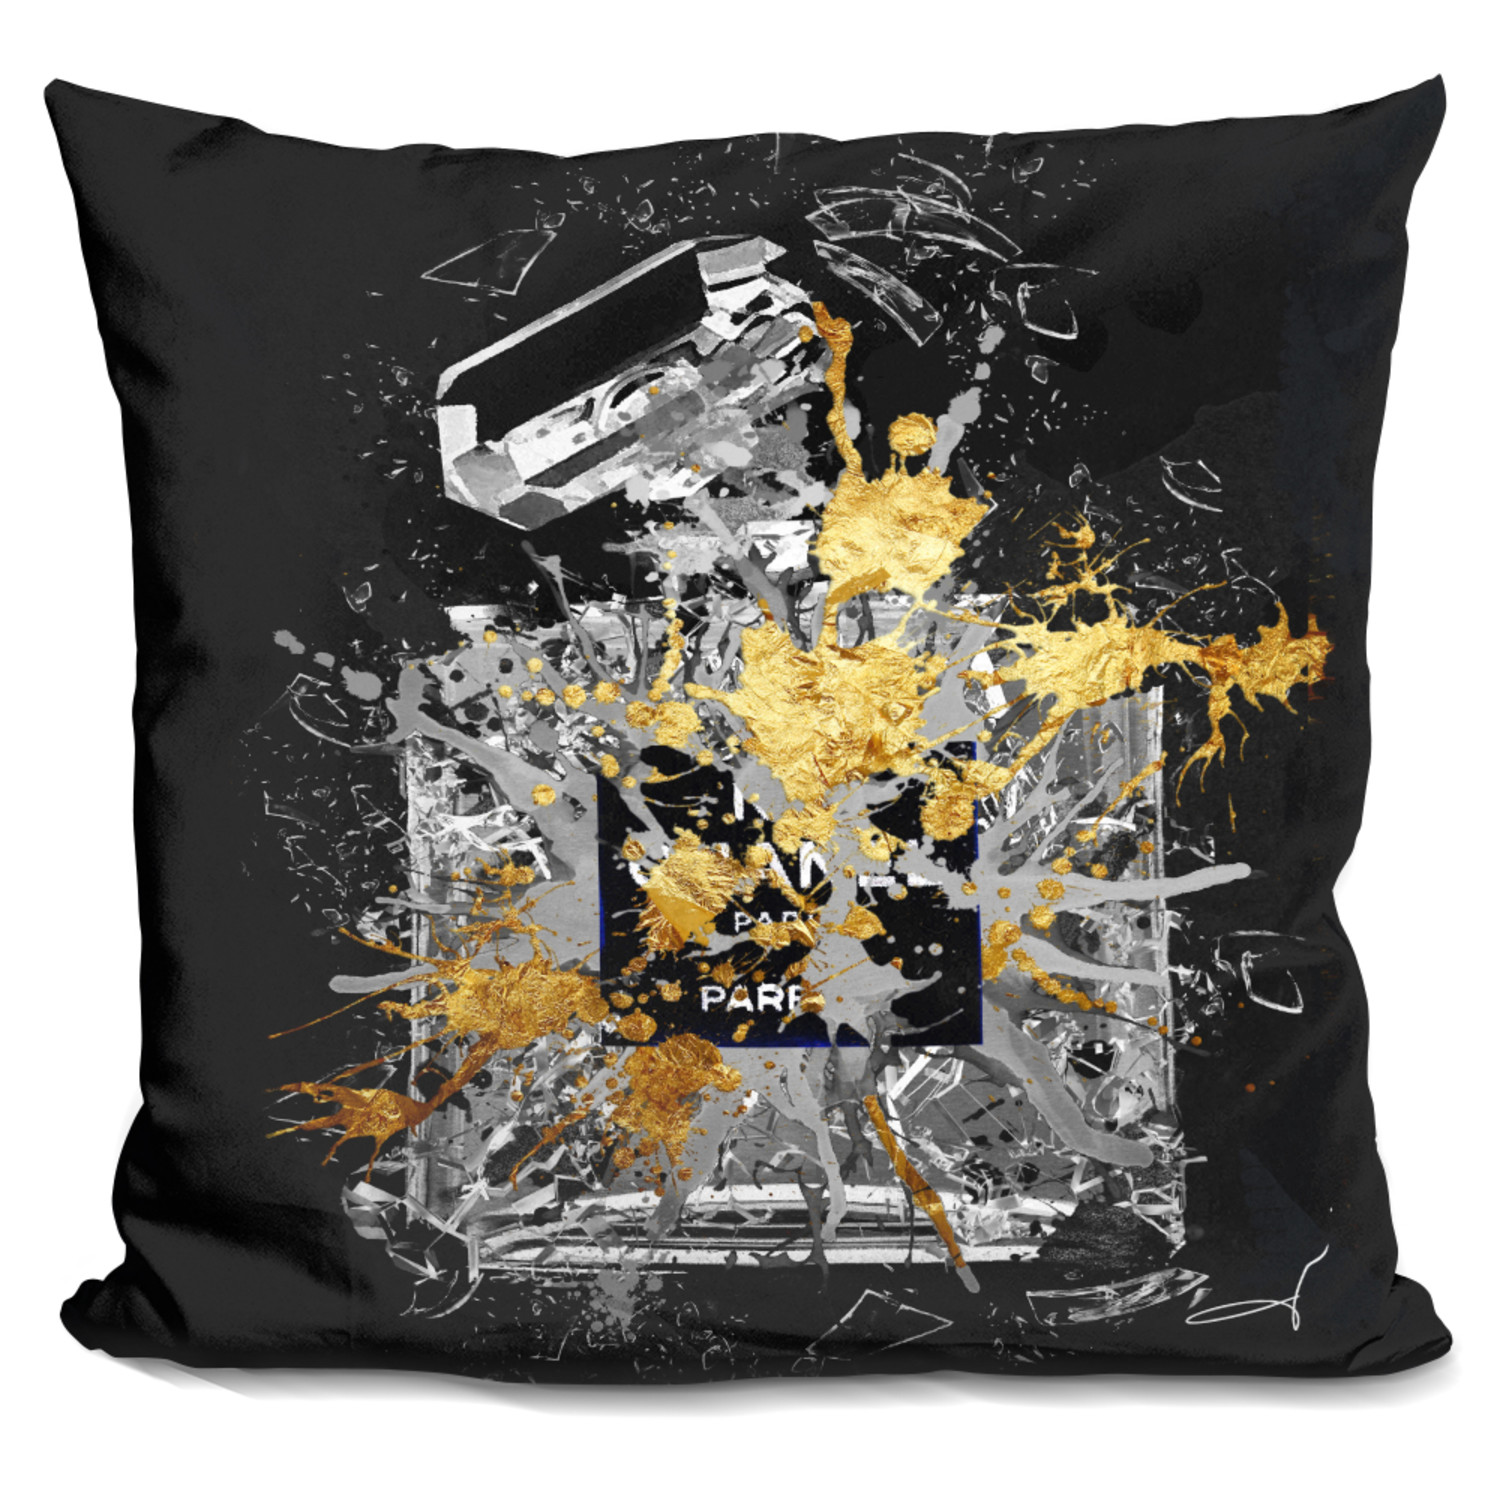 Explode In Black Throw Pillow